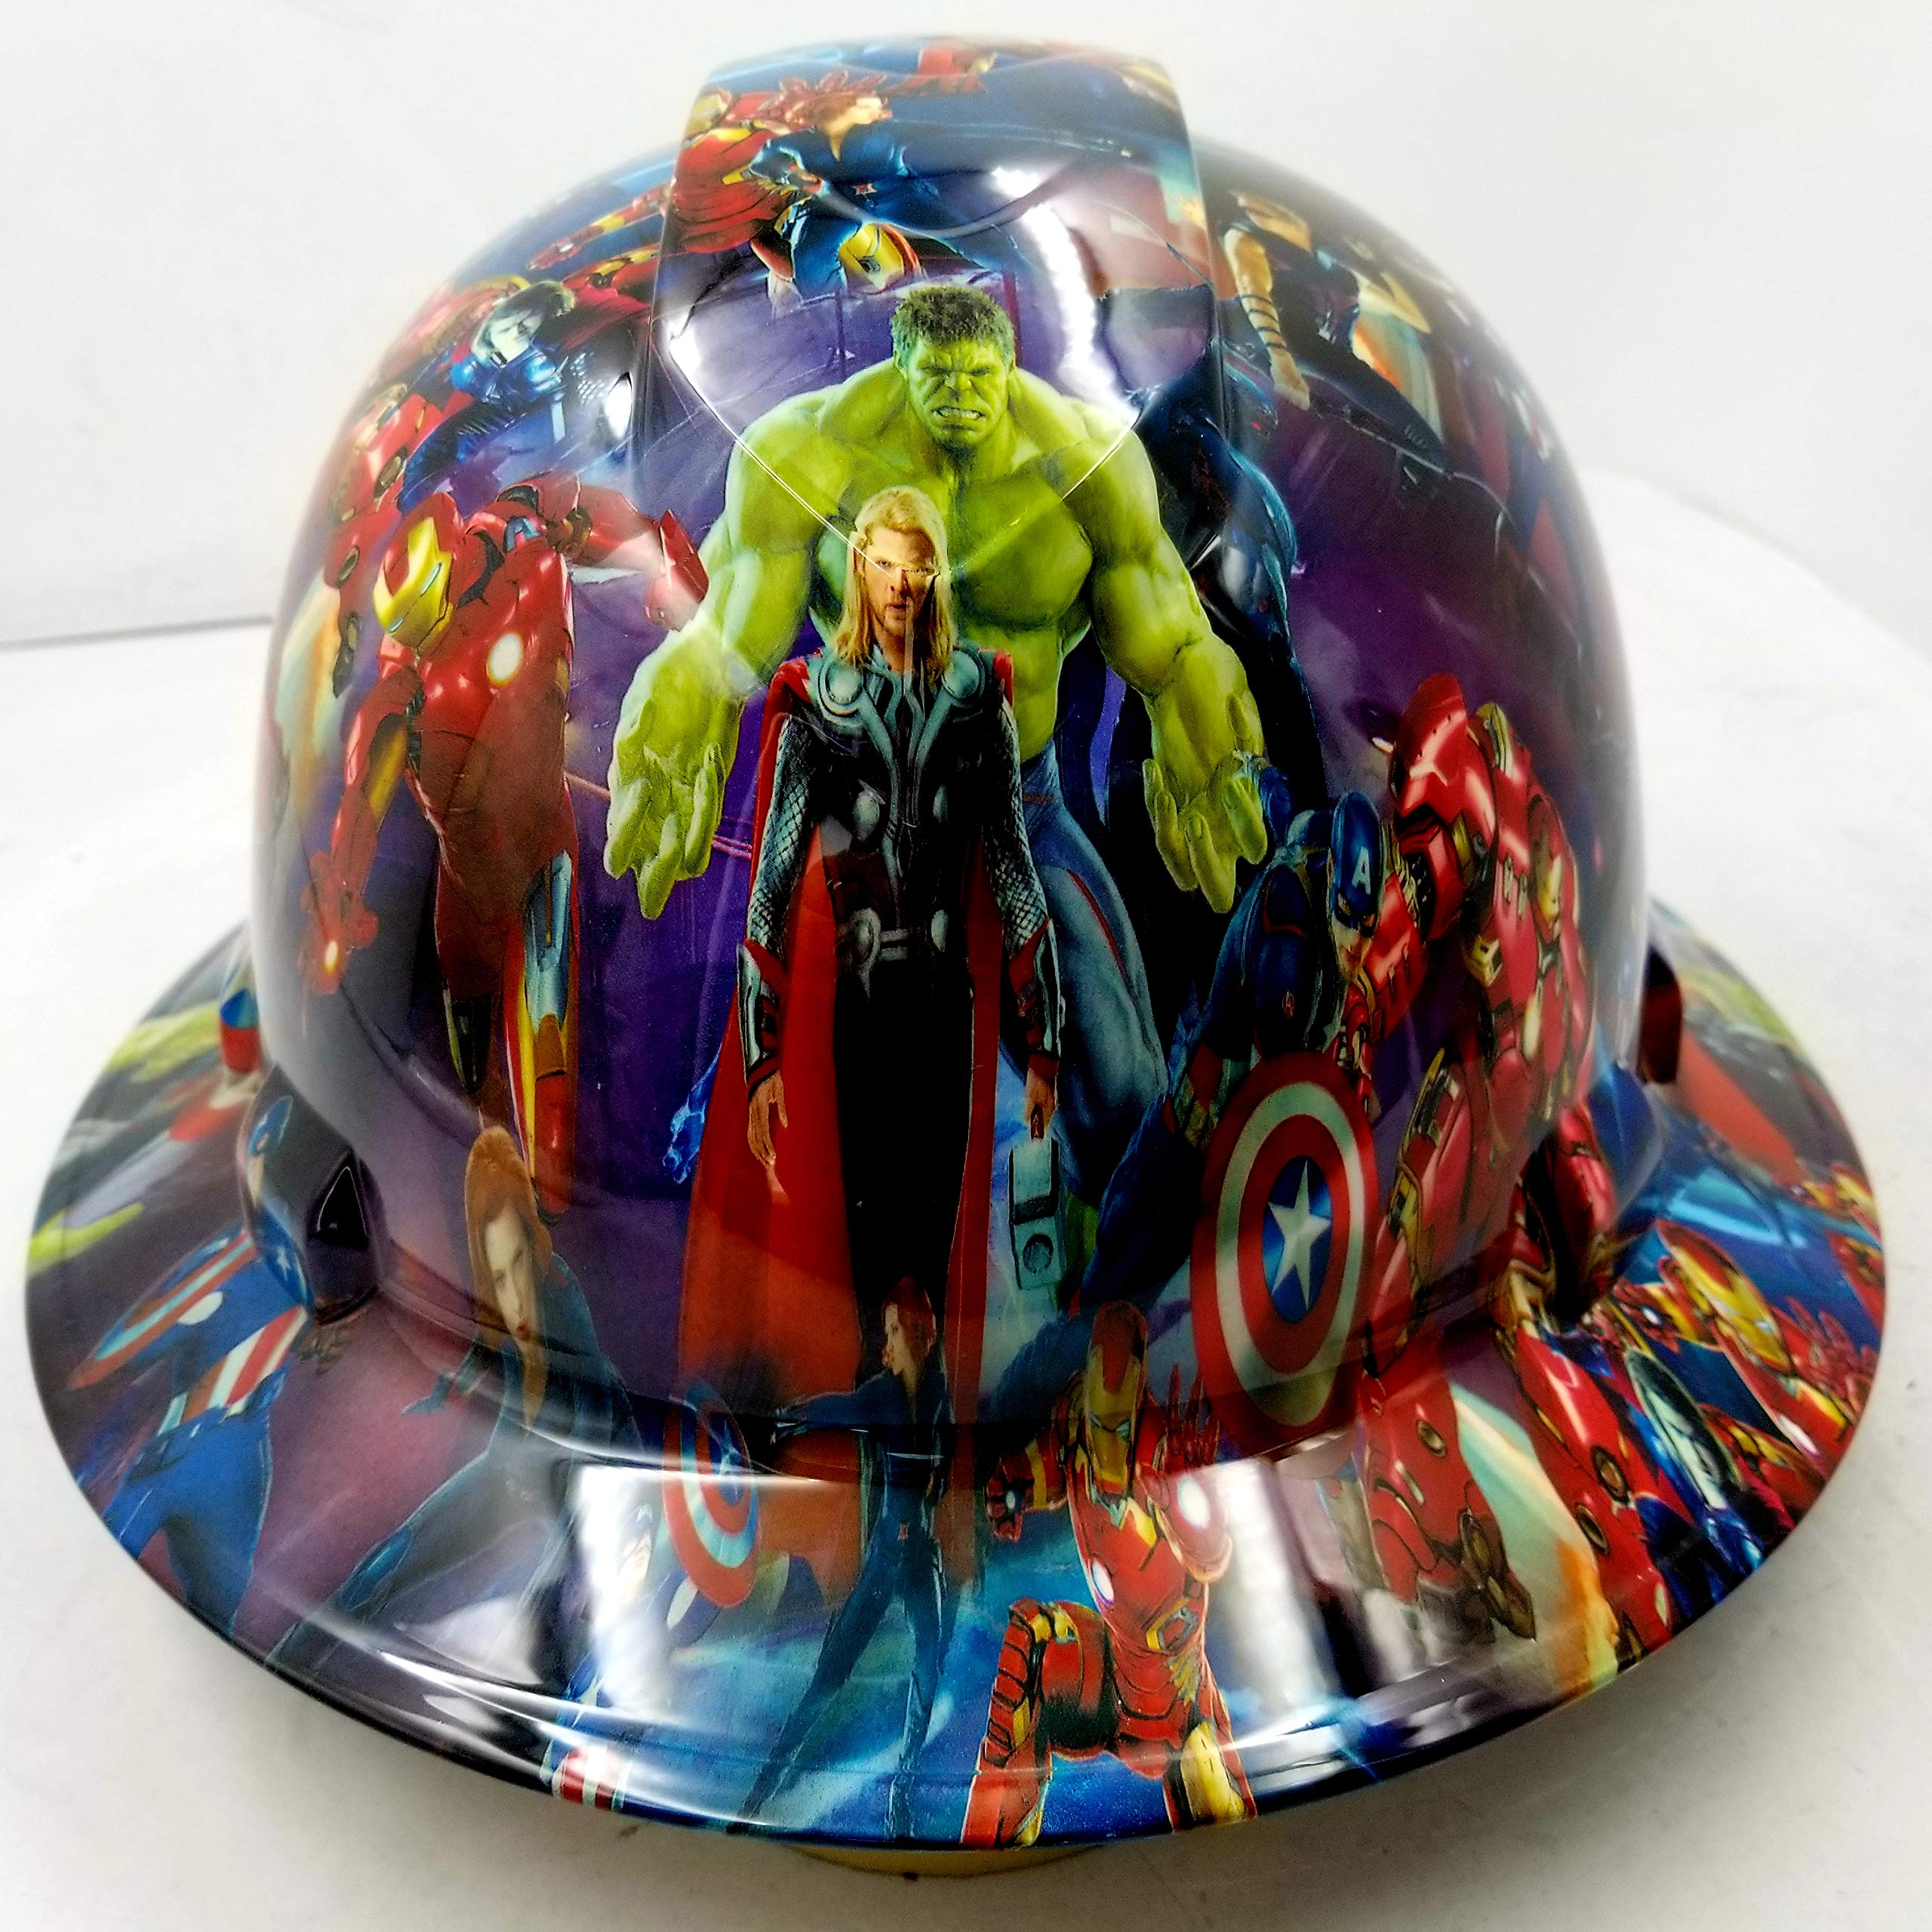 Wet Works Imaging Customized Pyramex Full Brim Superheroes Hard HAT with Ratcheting Suspension Custom LIDS Crazy Sick Construction PPE by Wet Works Imaging